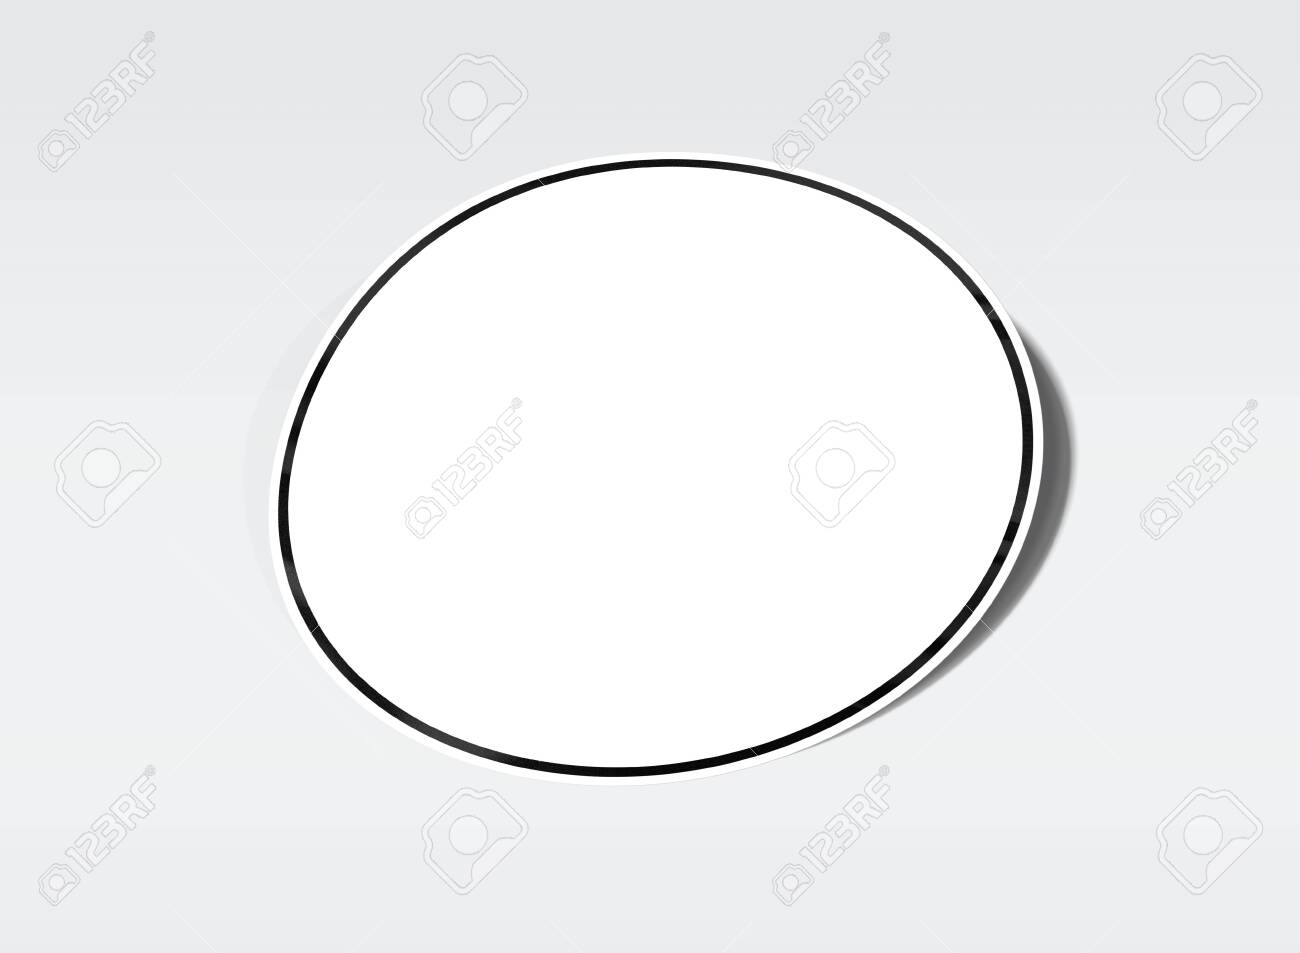 Rounded shaped sticker mockup isolated on white background 3D